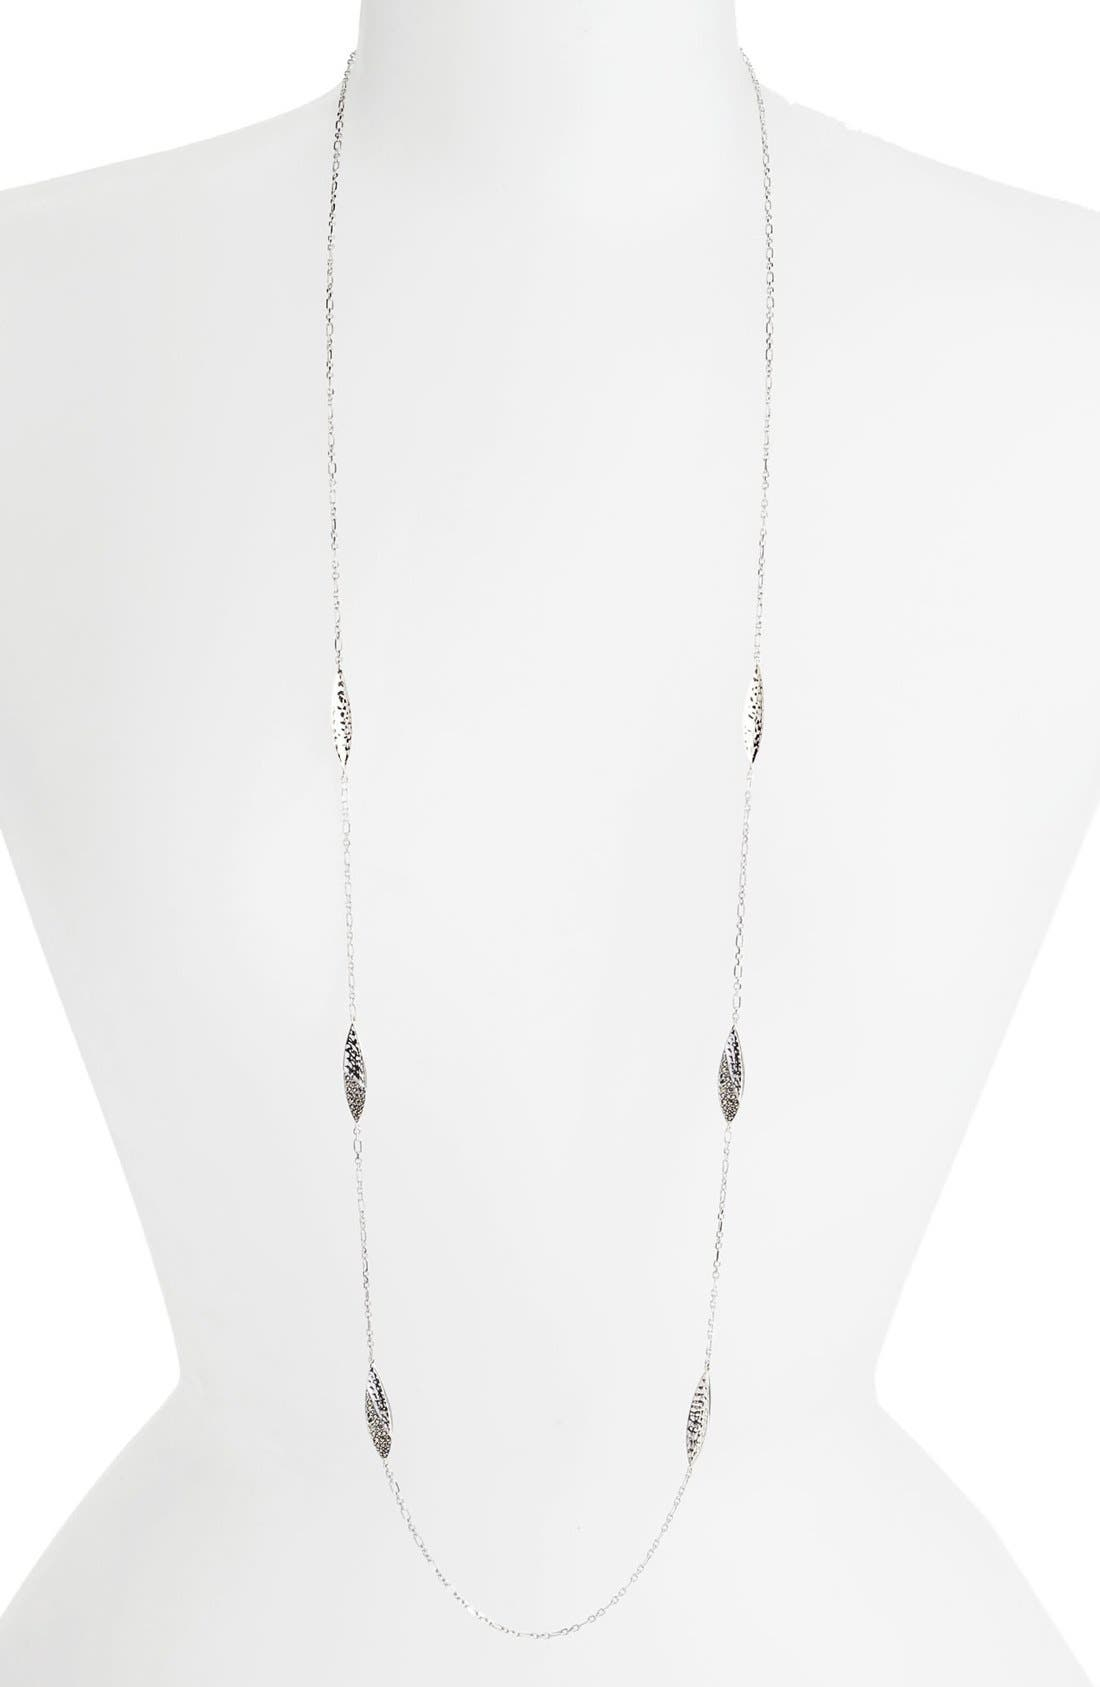 Main Image - Judith Jack 'Silver Rain' Extra Long Station Necklace (Nordstrom Exclusive)